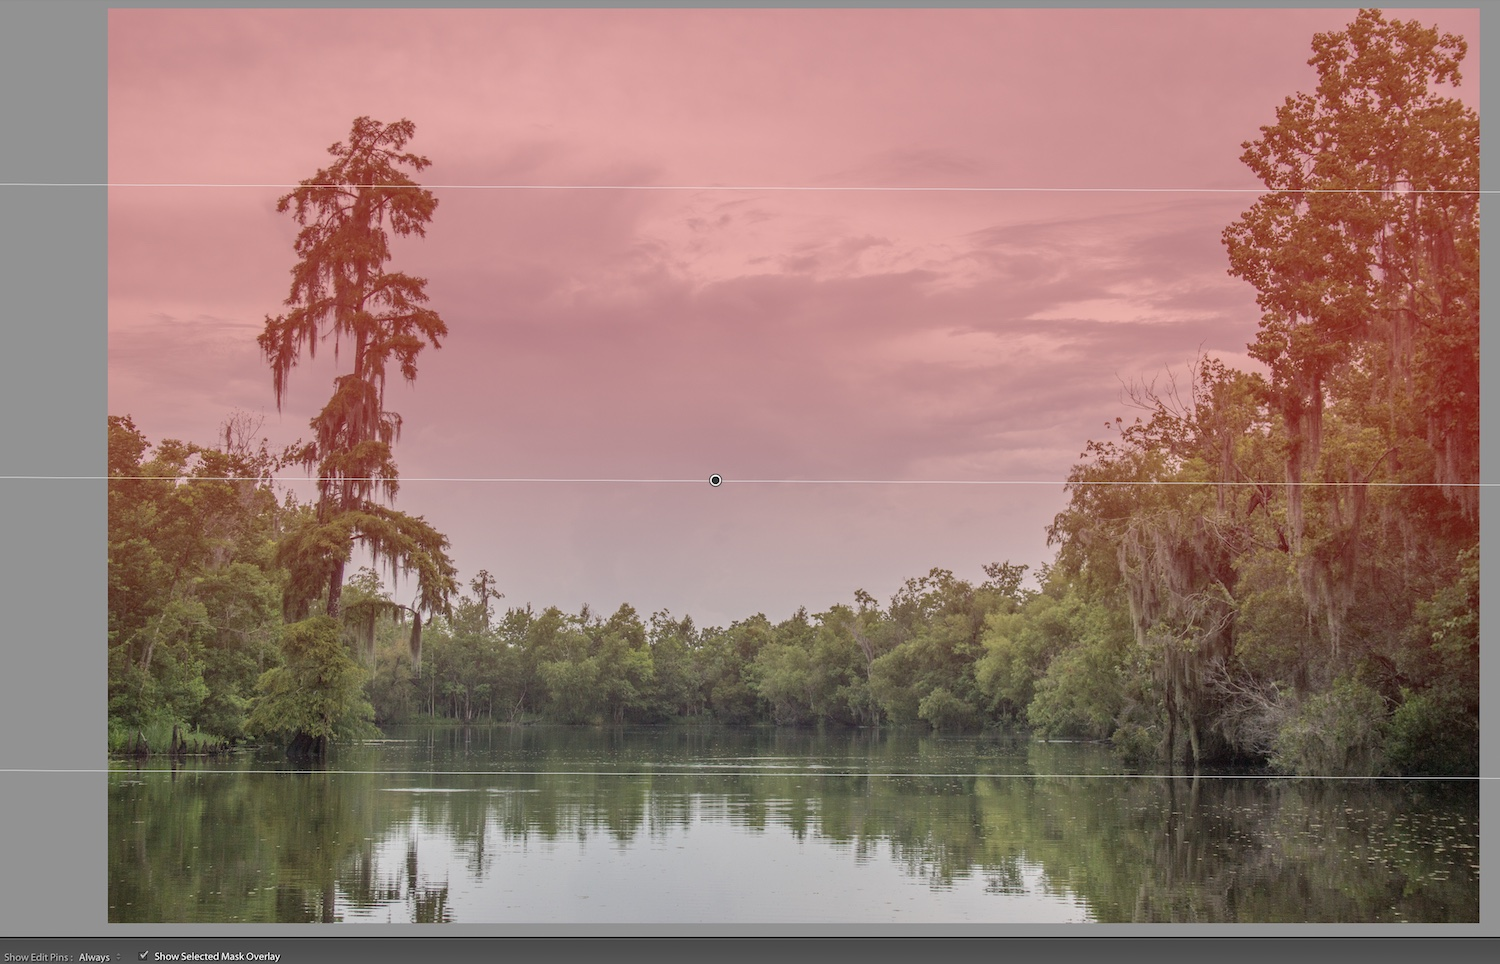 How to Edit Landscape and Nature Photos with the Lightroom Gradient Tool and Range Mask Features